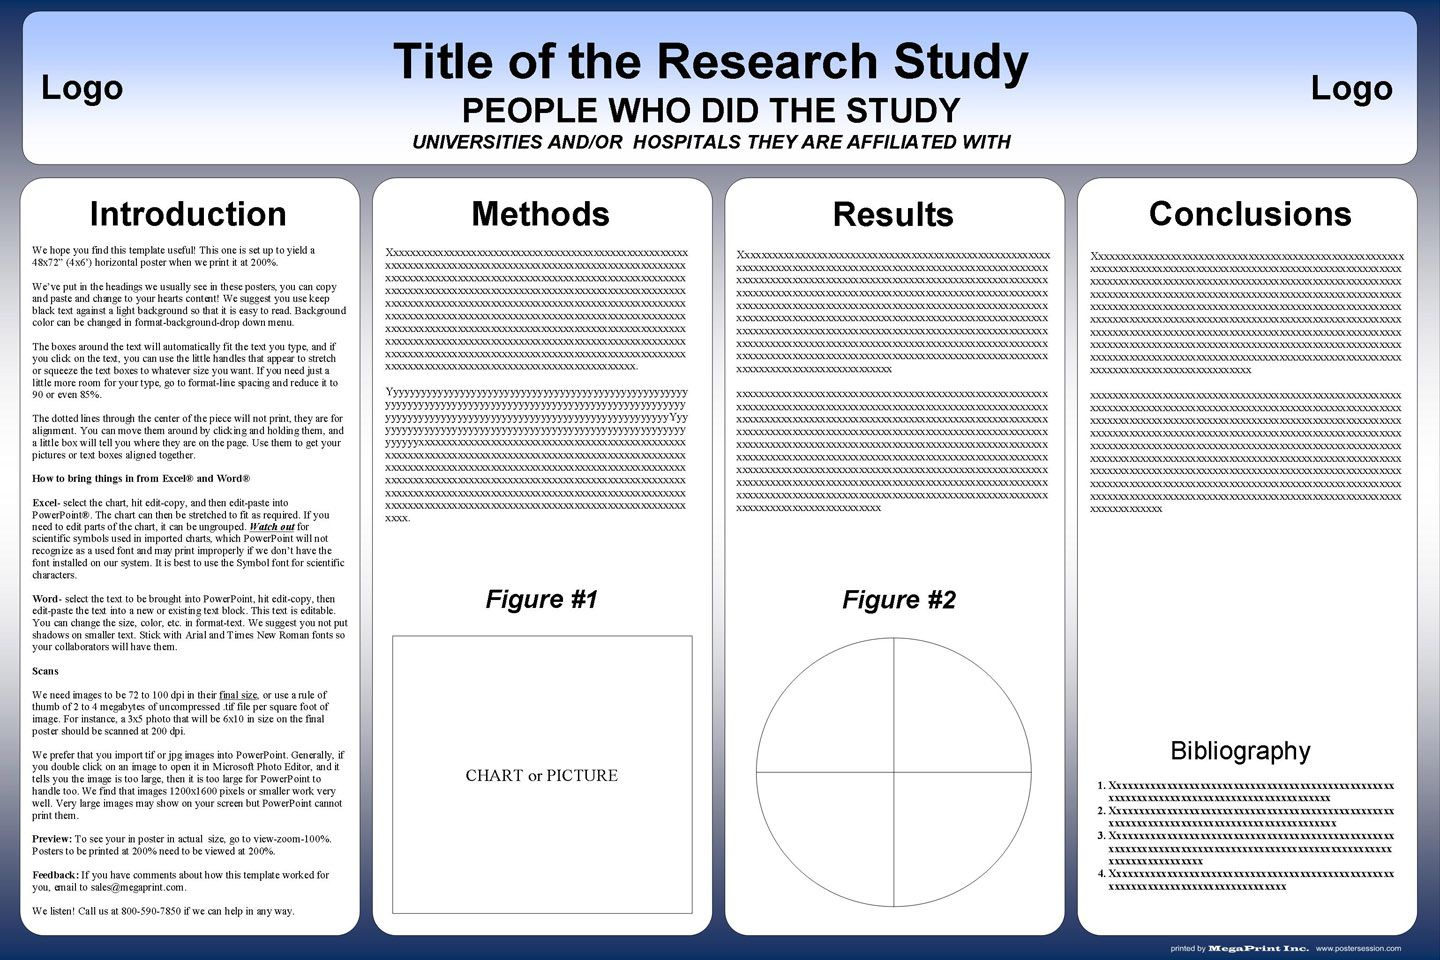 004 Incredible Scientific Poster Presentation Template Free Download High Definition Full